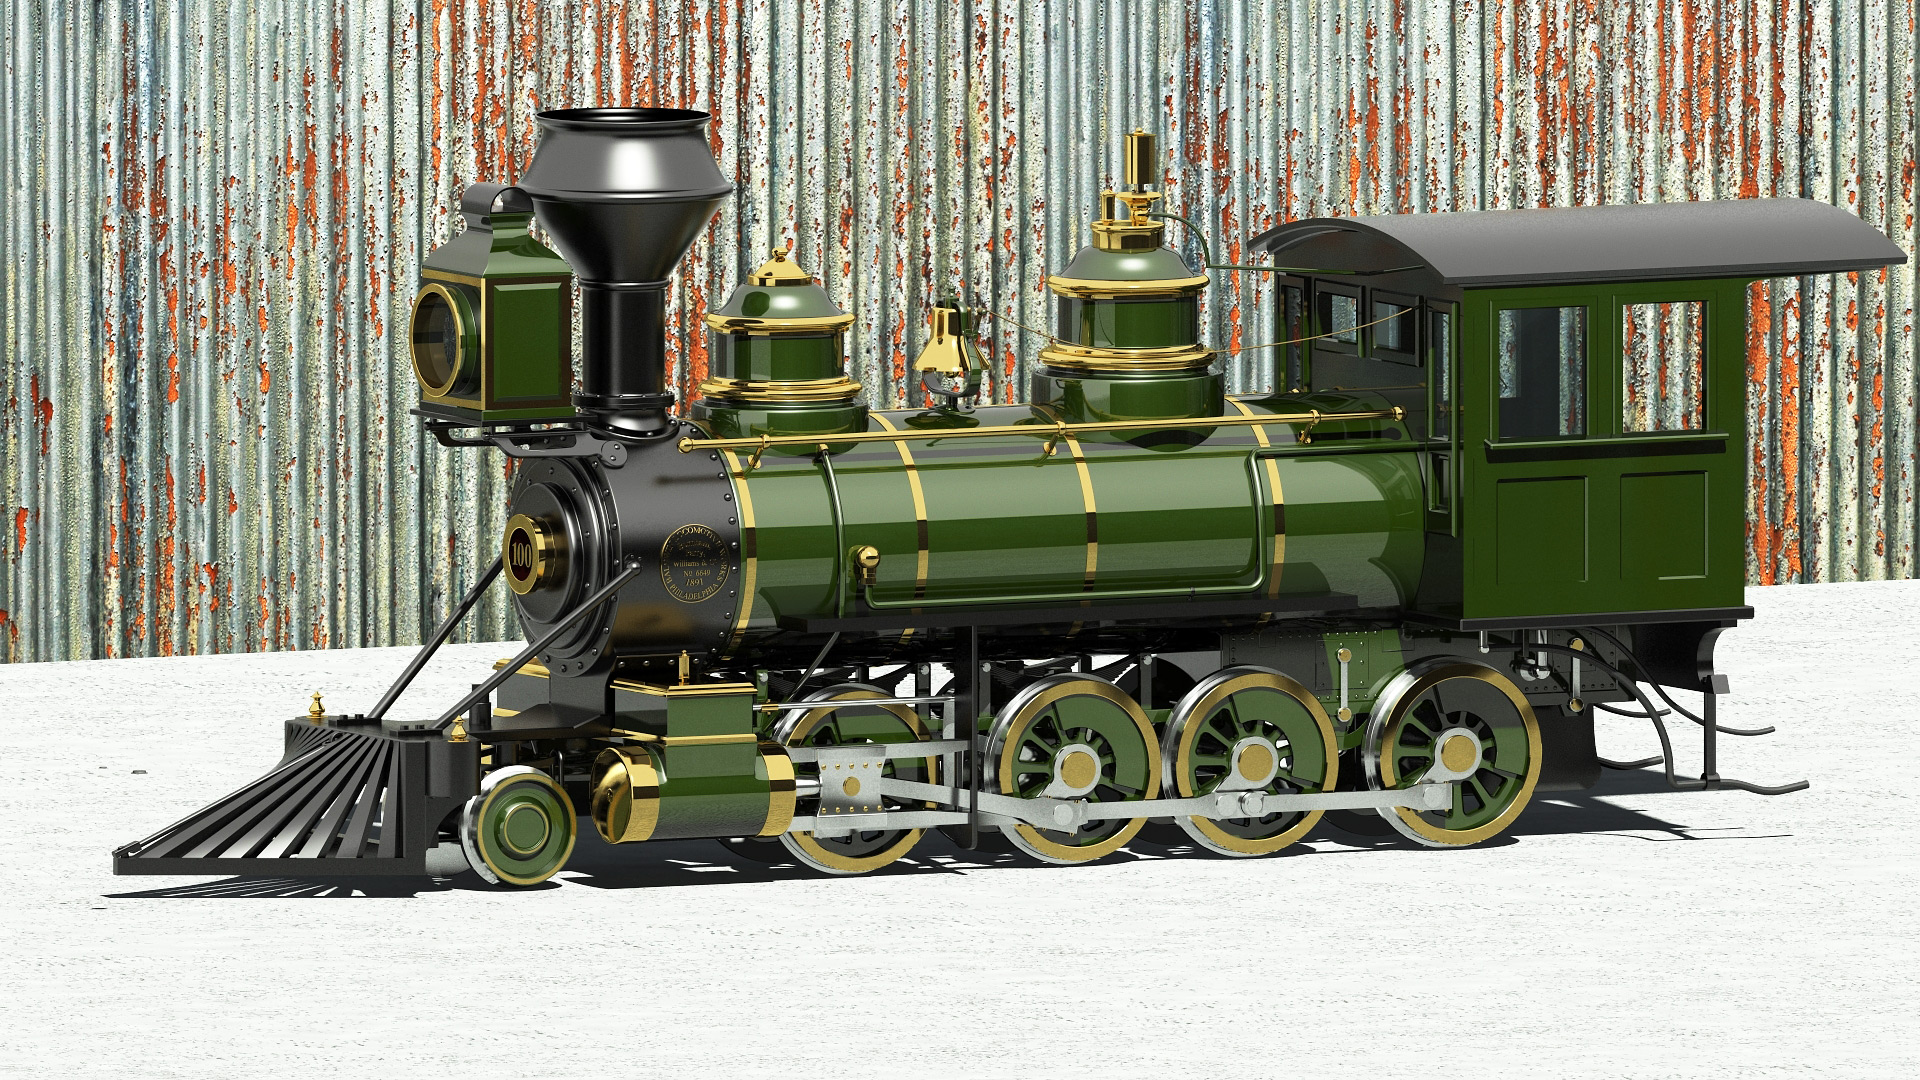 Old Train Side View Drawing Steam engine train side viewSteam Train Side View